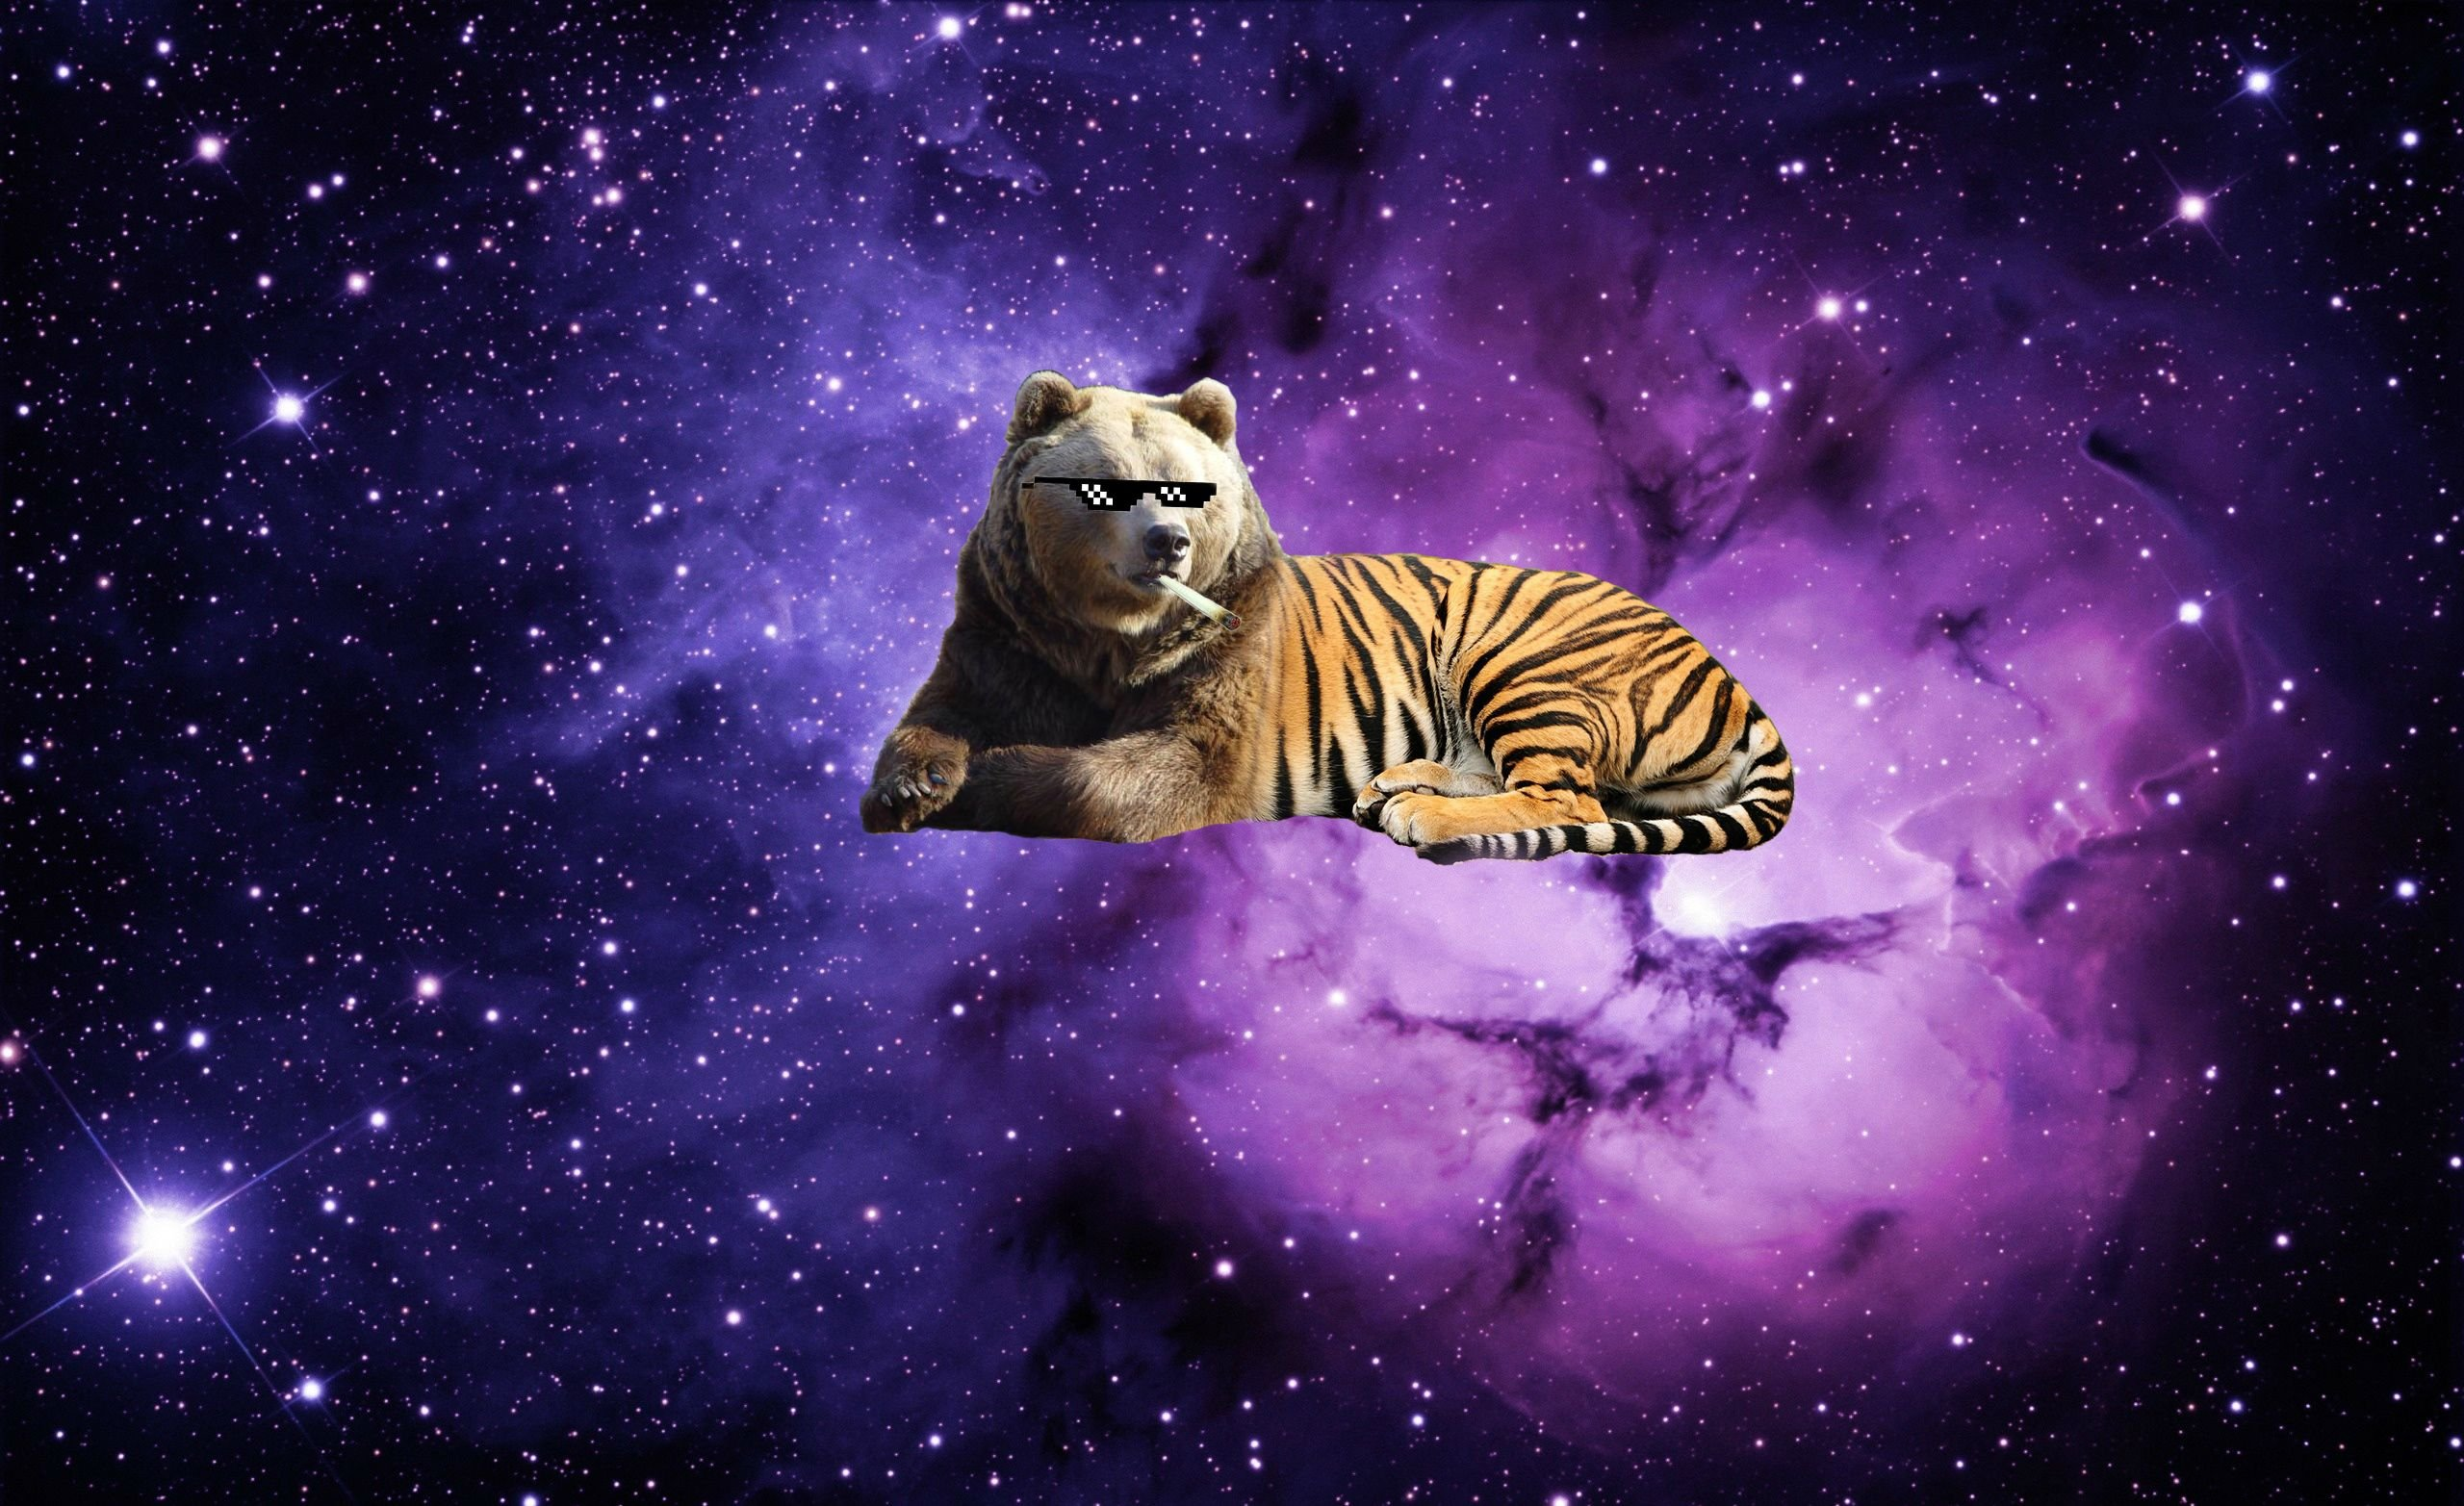 Lsd Wallpaper Iphone Funny Animal Backgrounds Pictures Images